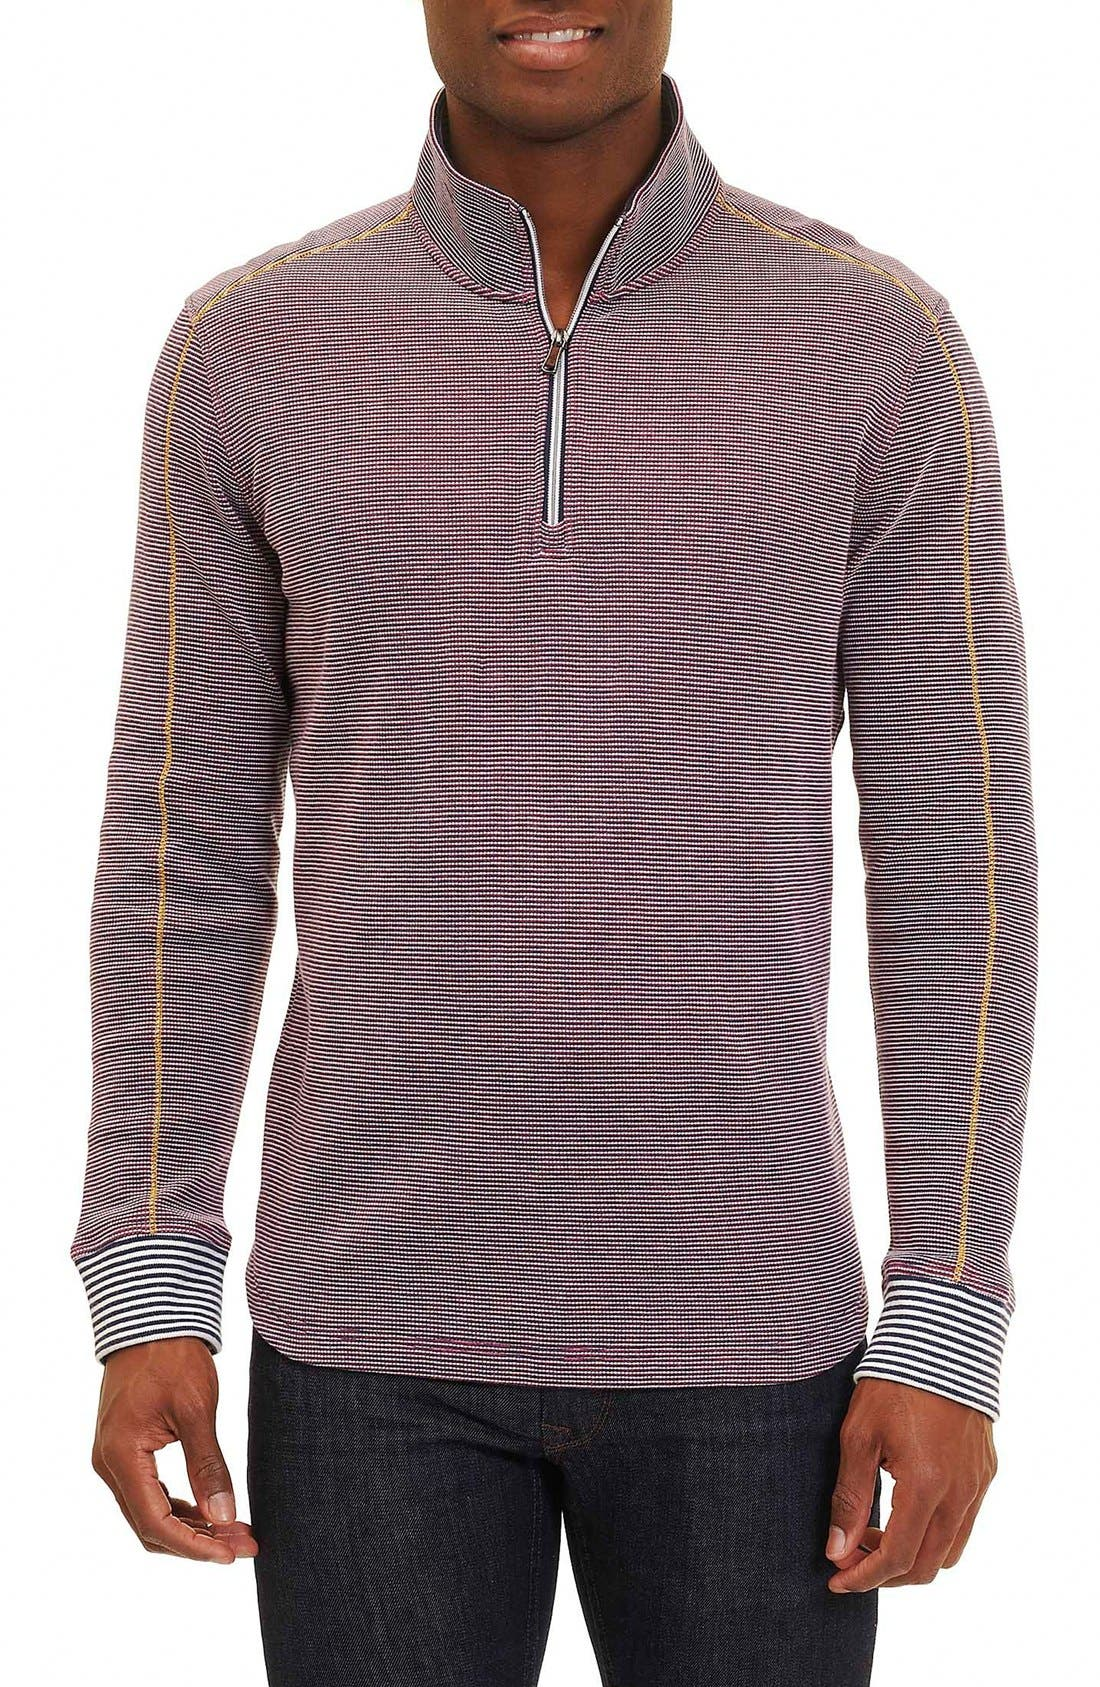 Poole Regular Fit Quarter Zip Pullover,                         Main,                         color, Navy